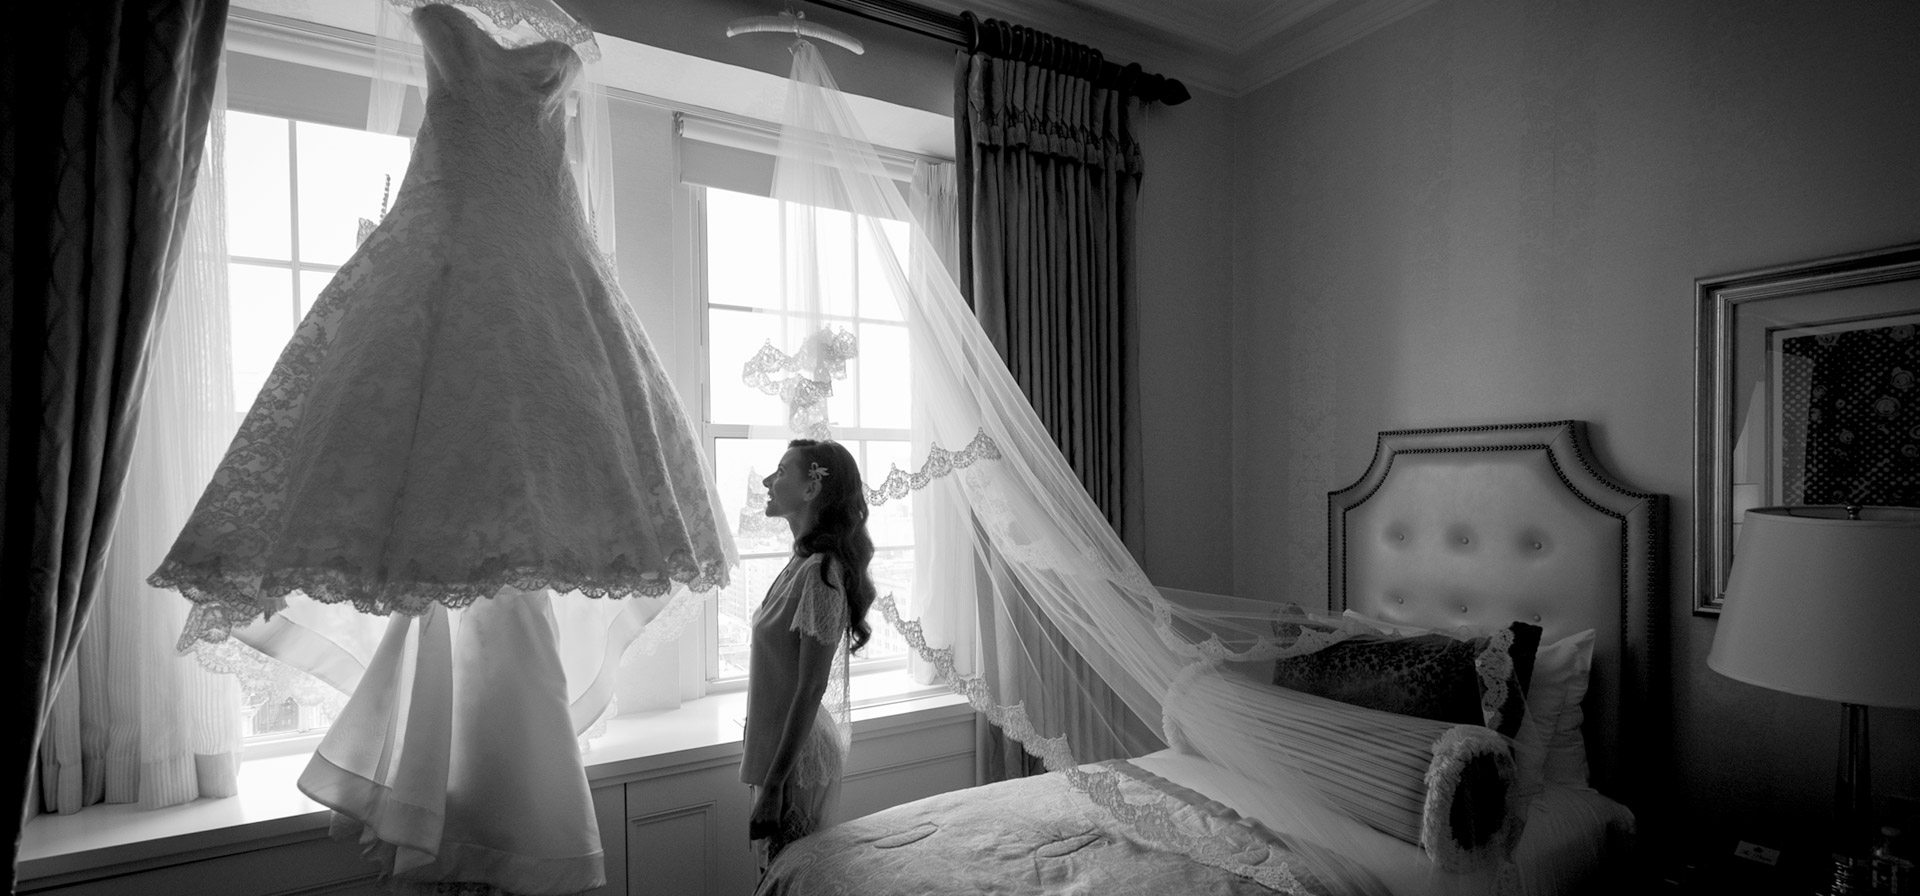 Woman in room next to wedding dress